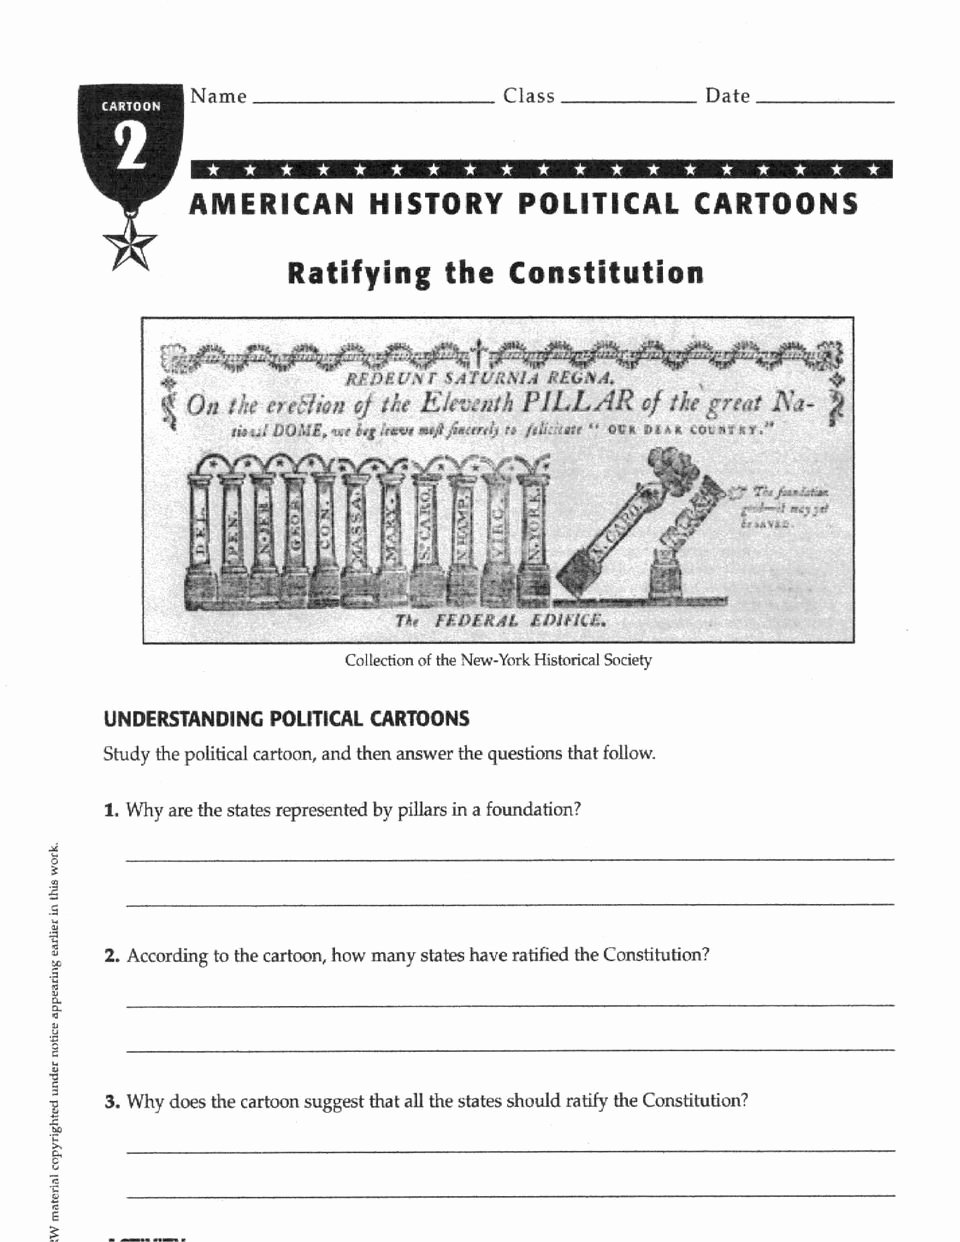 Ratifying the Constitution Worksheet Answers Kids to Ratify or Not to Ratify Federalists V Anti Federalists